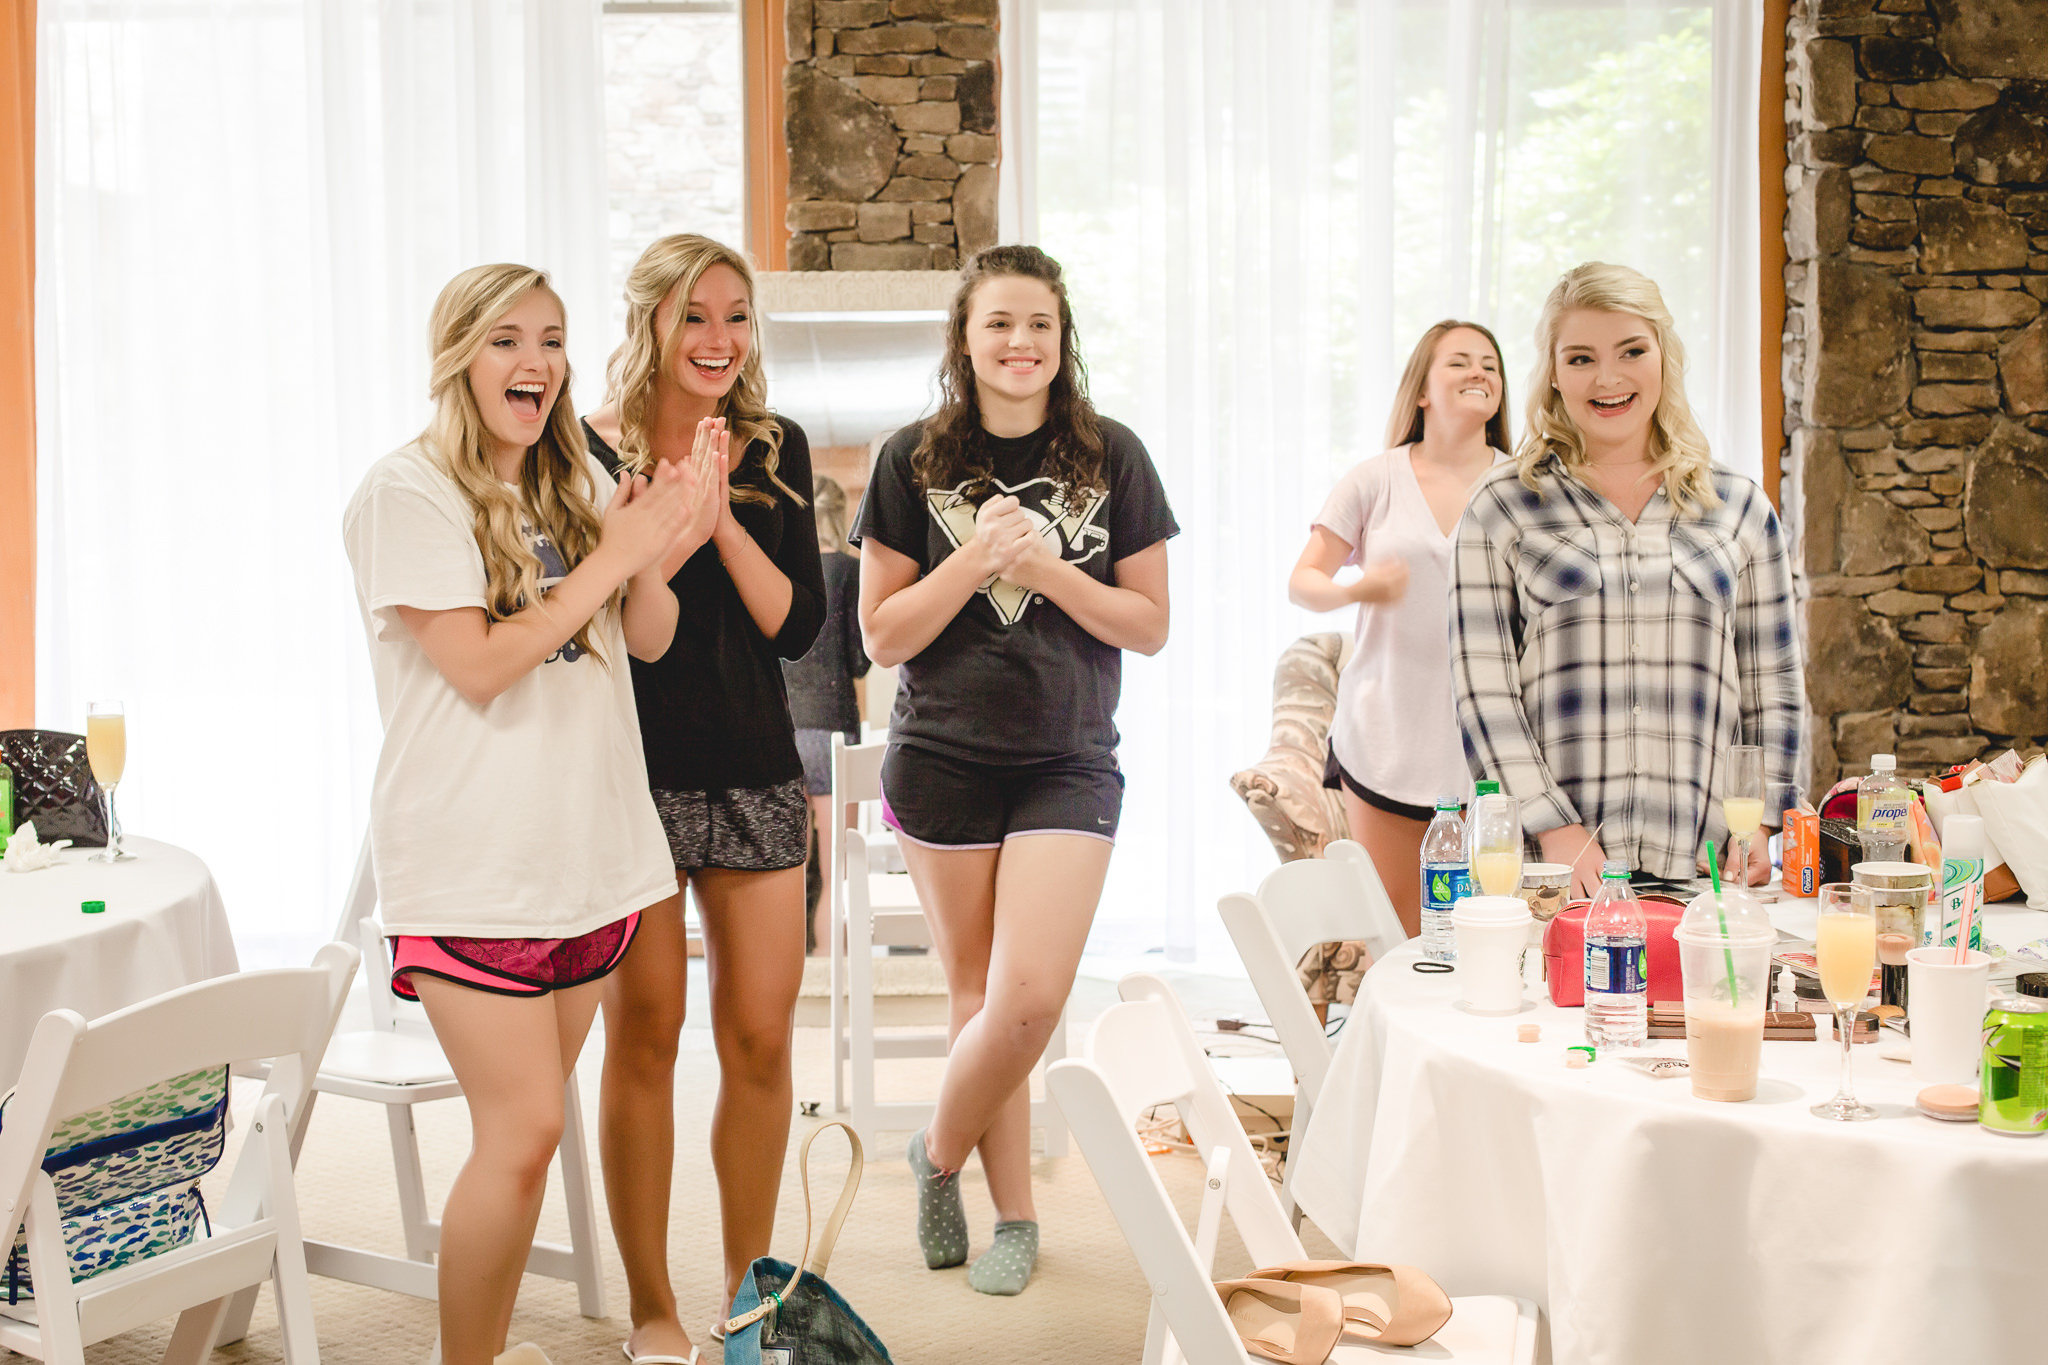 Bridesmaids react to seeing the bride in her dress